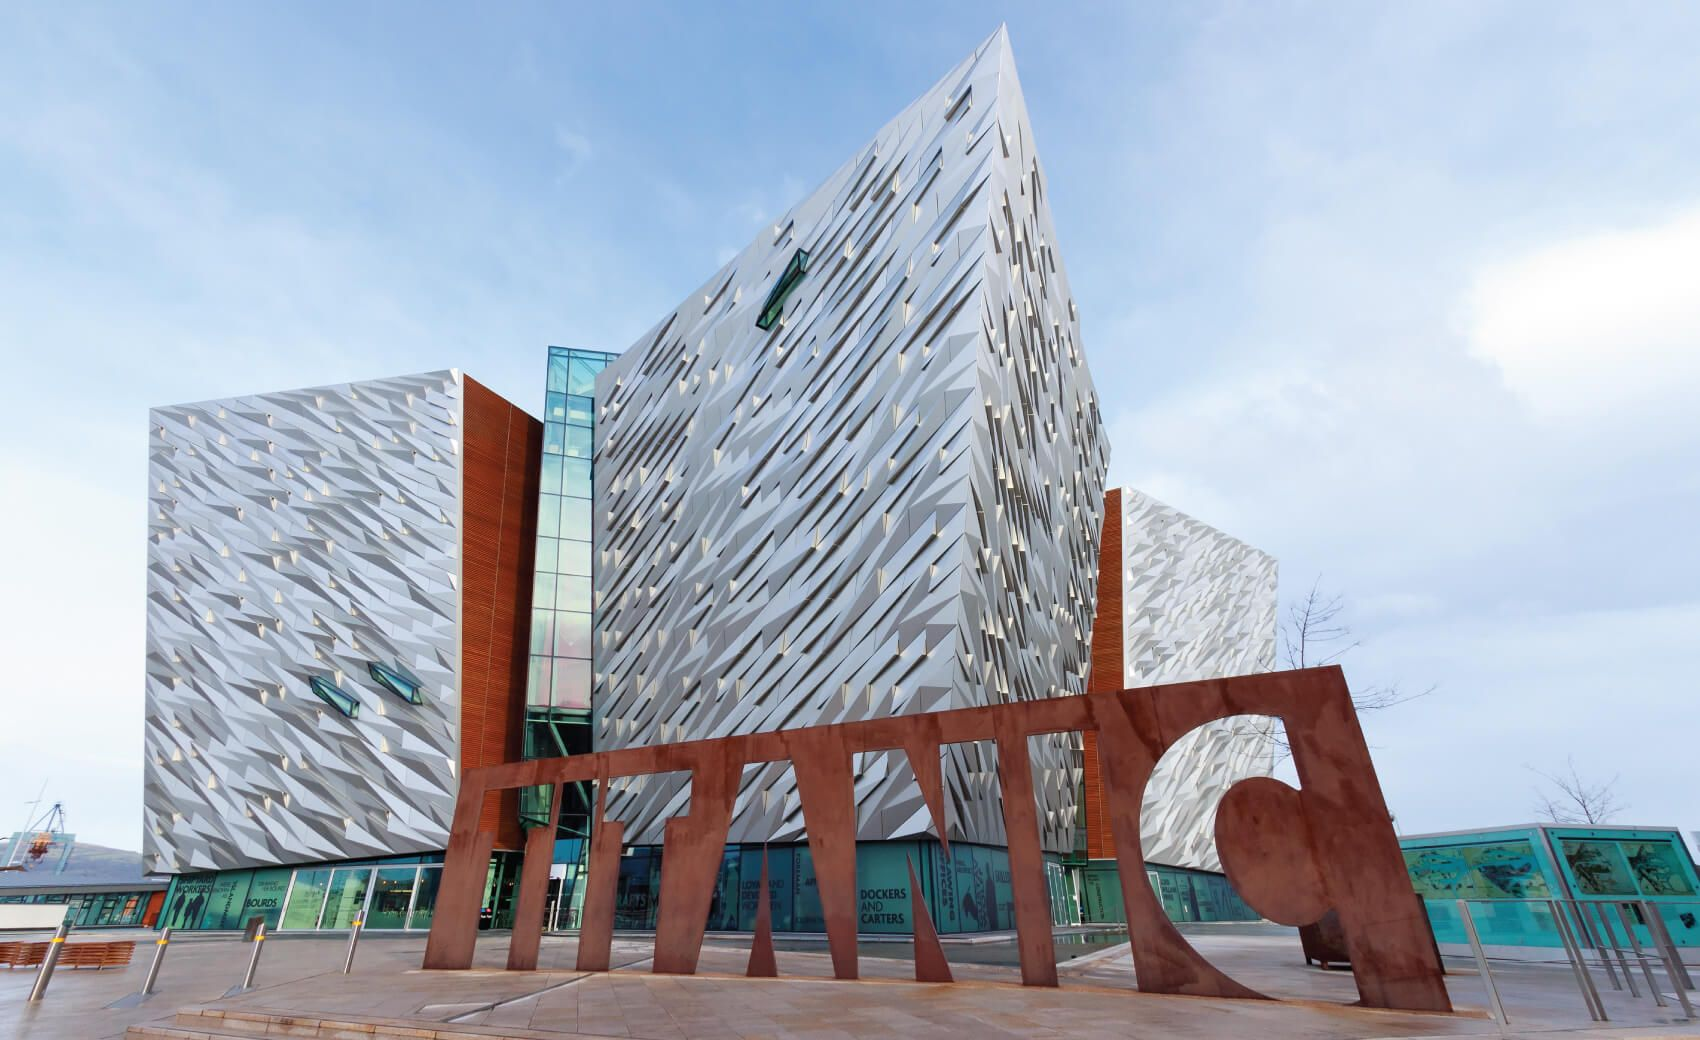 The Titanic visitor attraction and a monument in Belfast, Northern Ireland. Opened in 2012